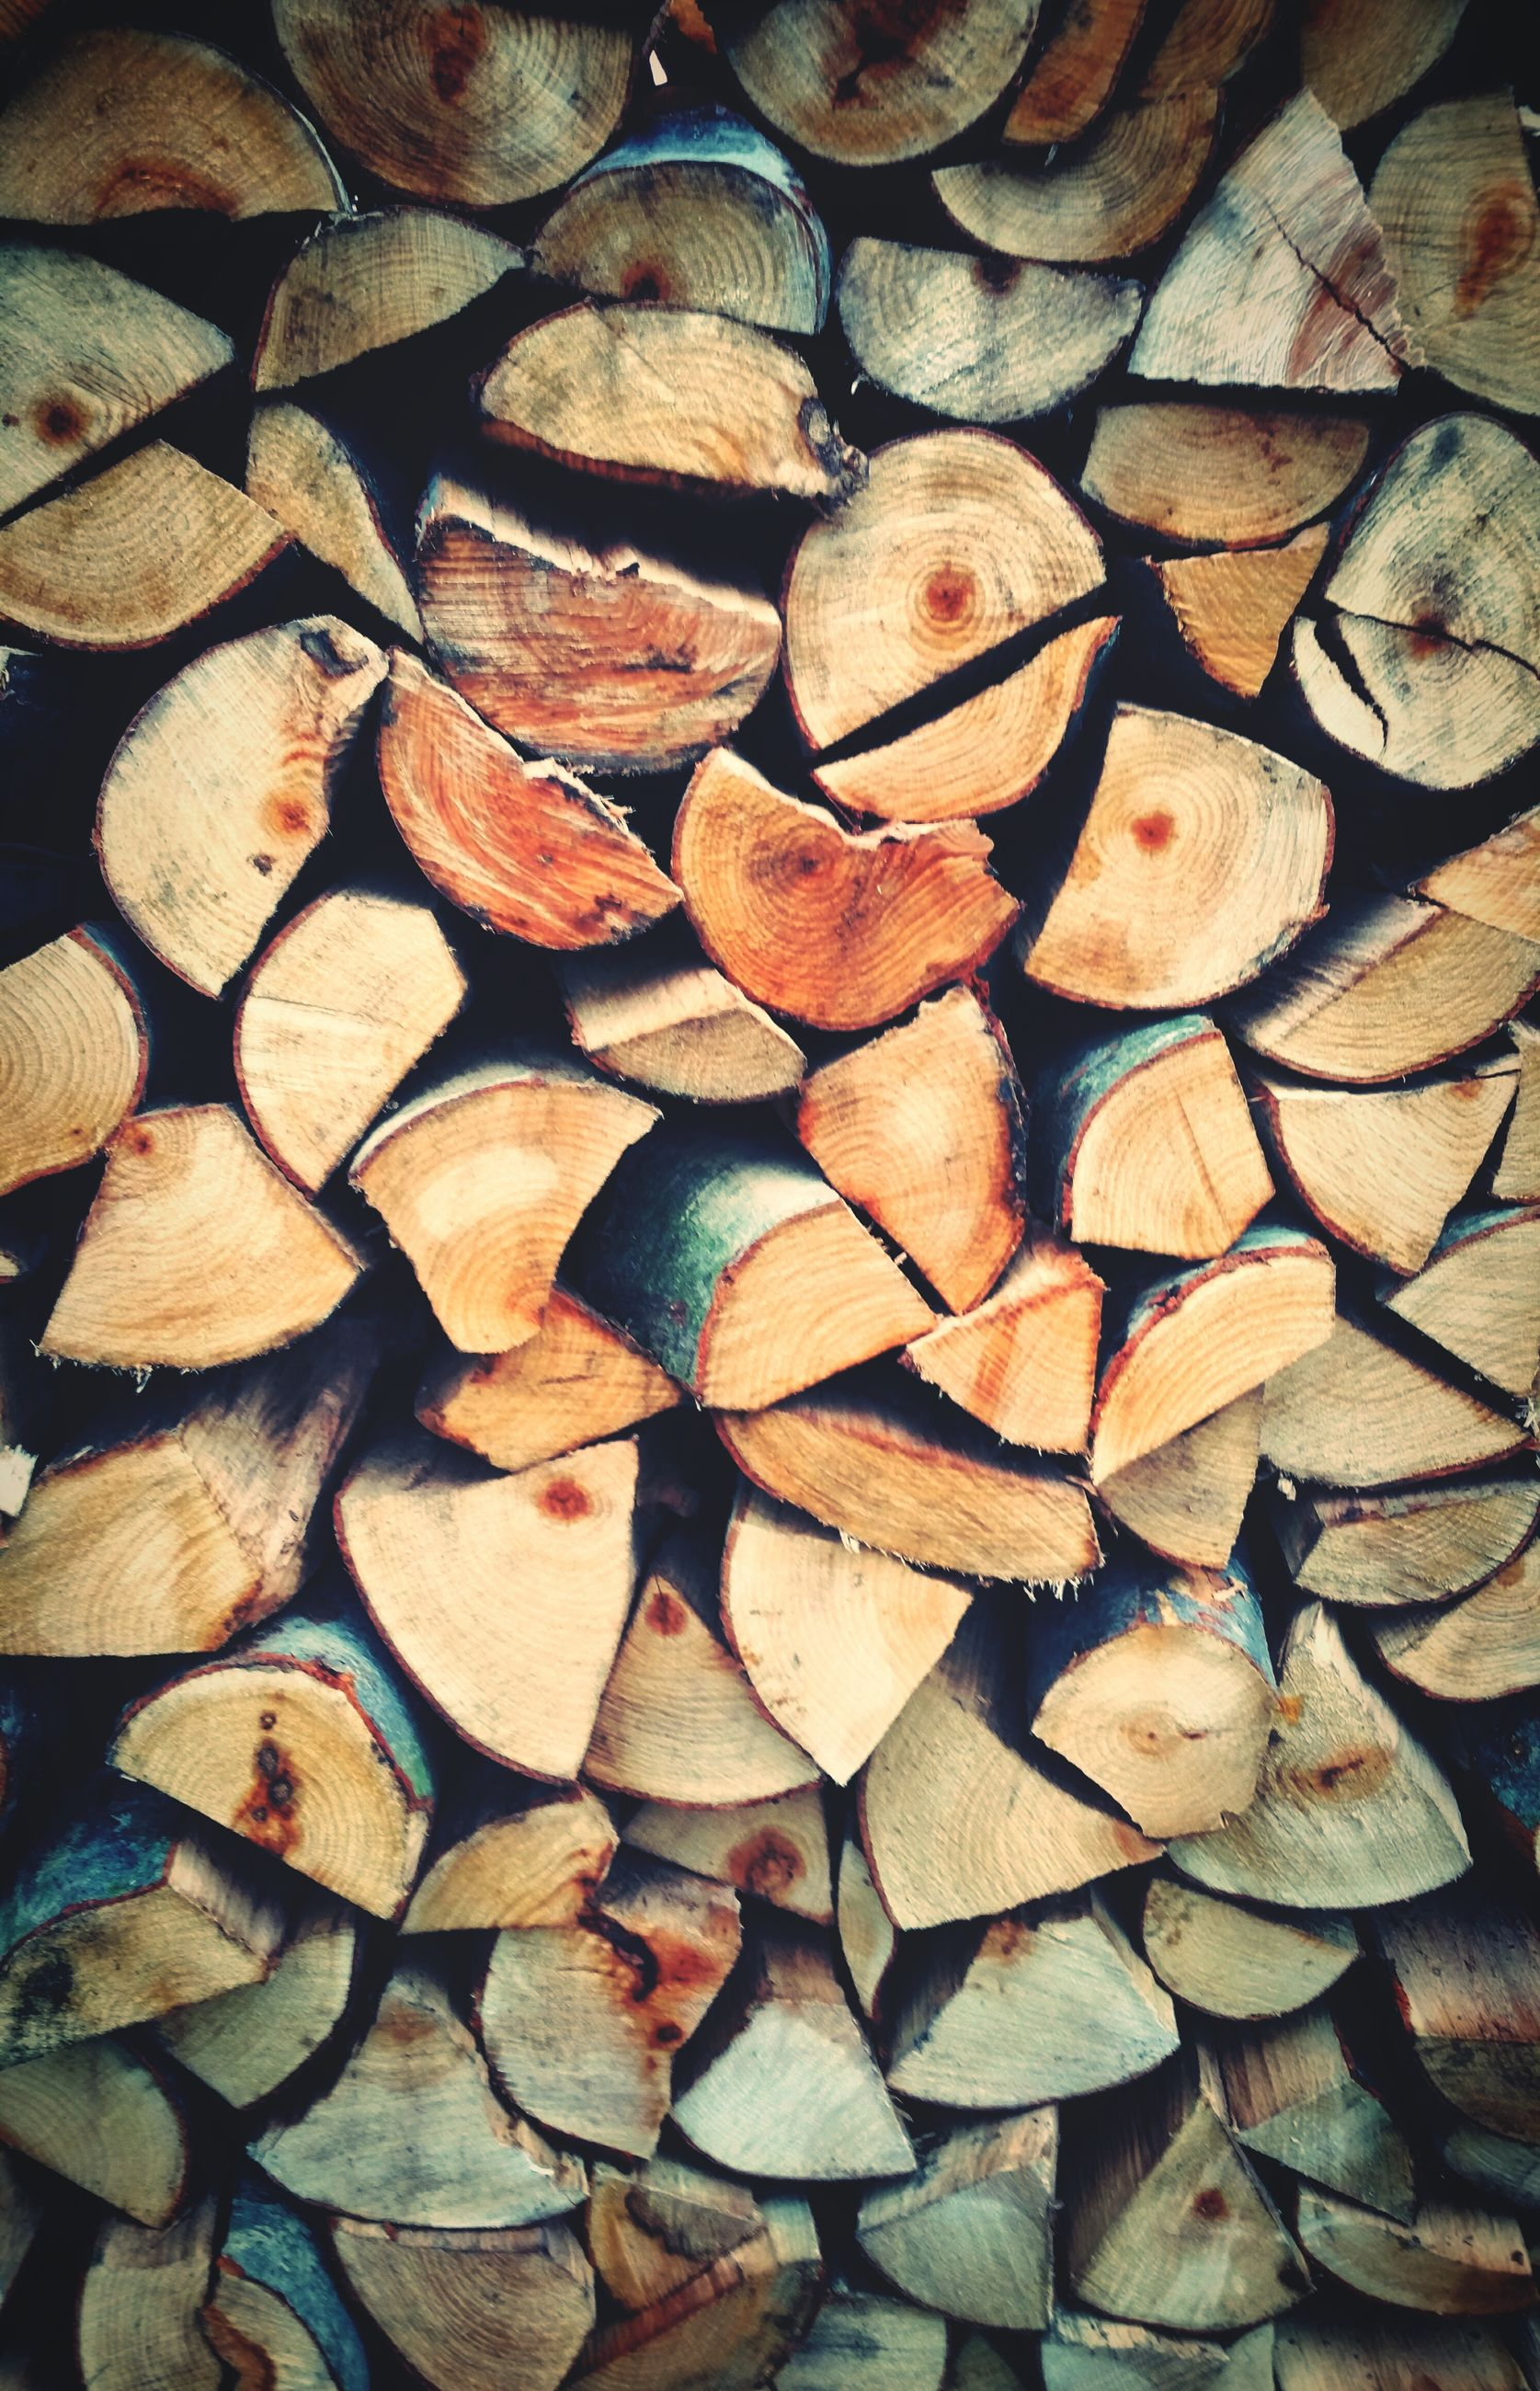 full frame, backgrounds, abundance, deforestation, lumber industry, large group of objects, log, repetition, firewood, day, woodland, no people